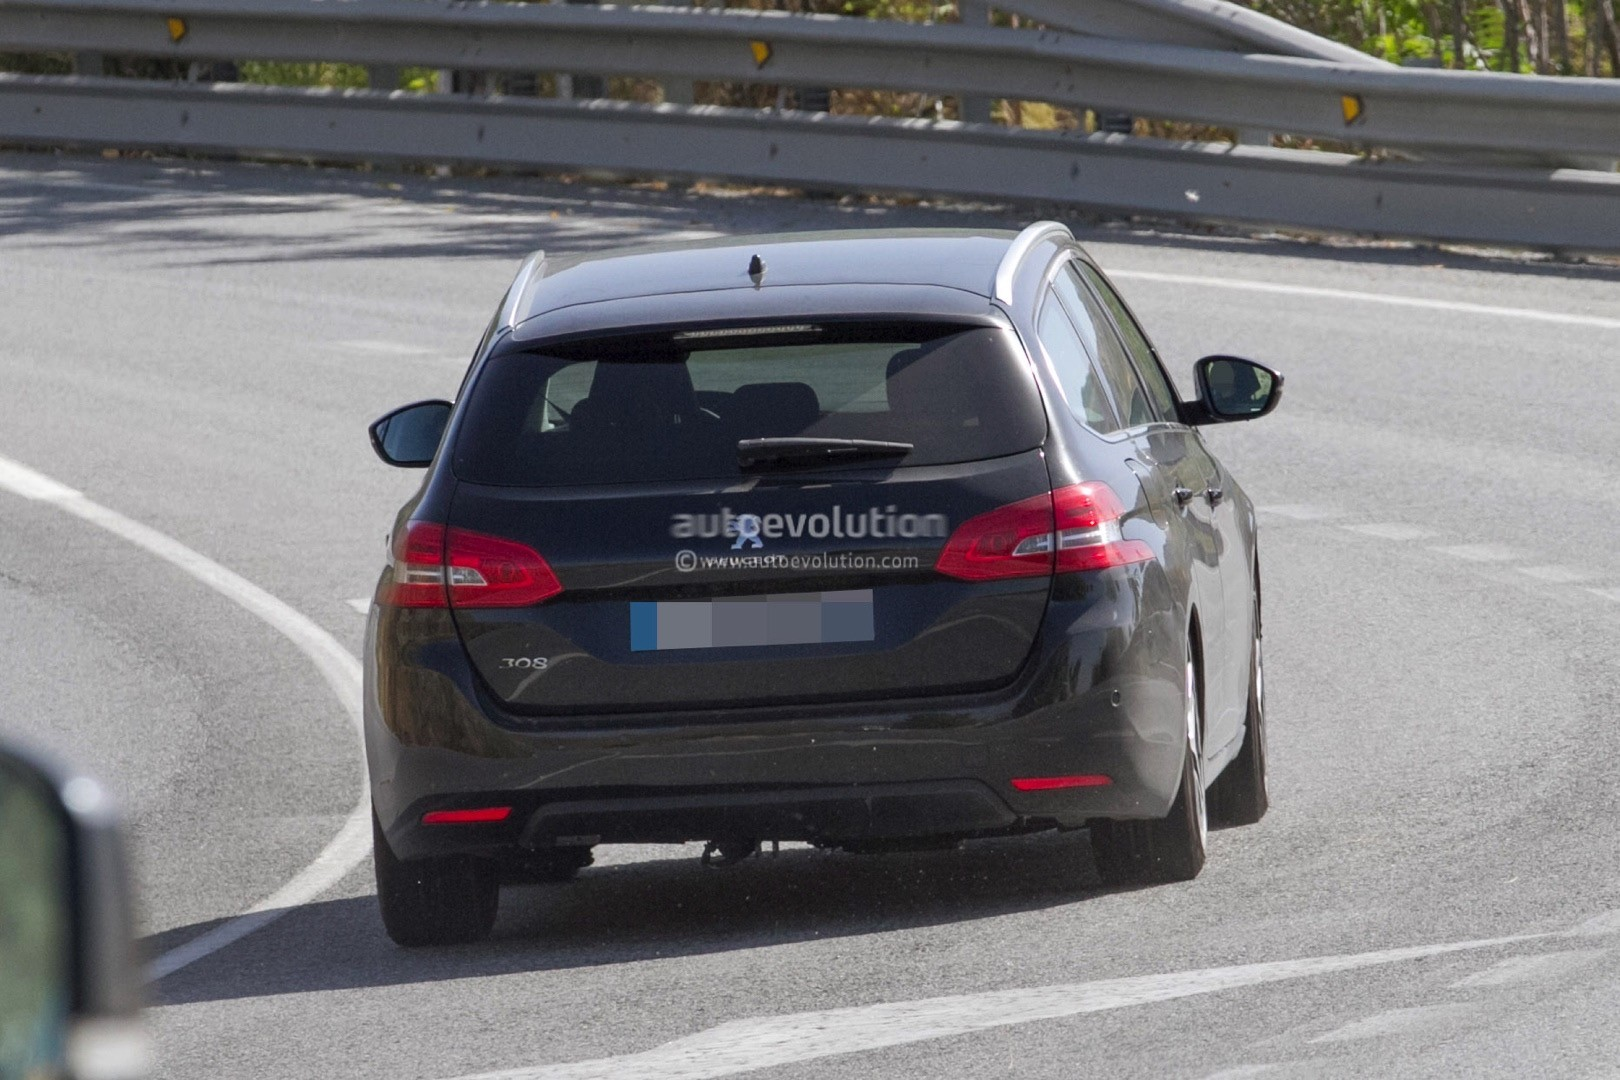 2017 - [Peugeot] 308 II Restylée - Page 11 Peugeot-prepares-to-facelift-308-model-lineup-for-2017_10